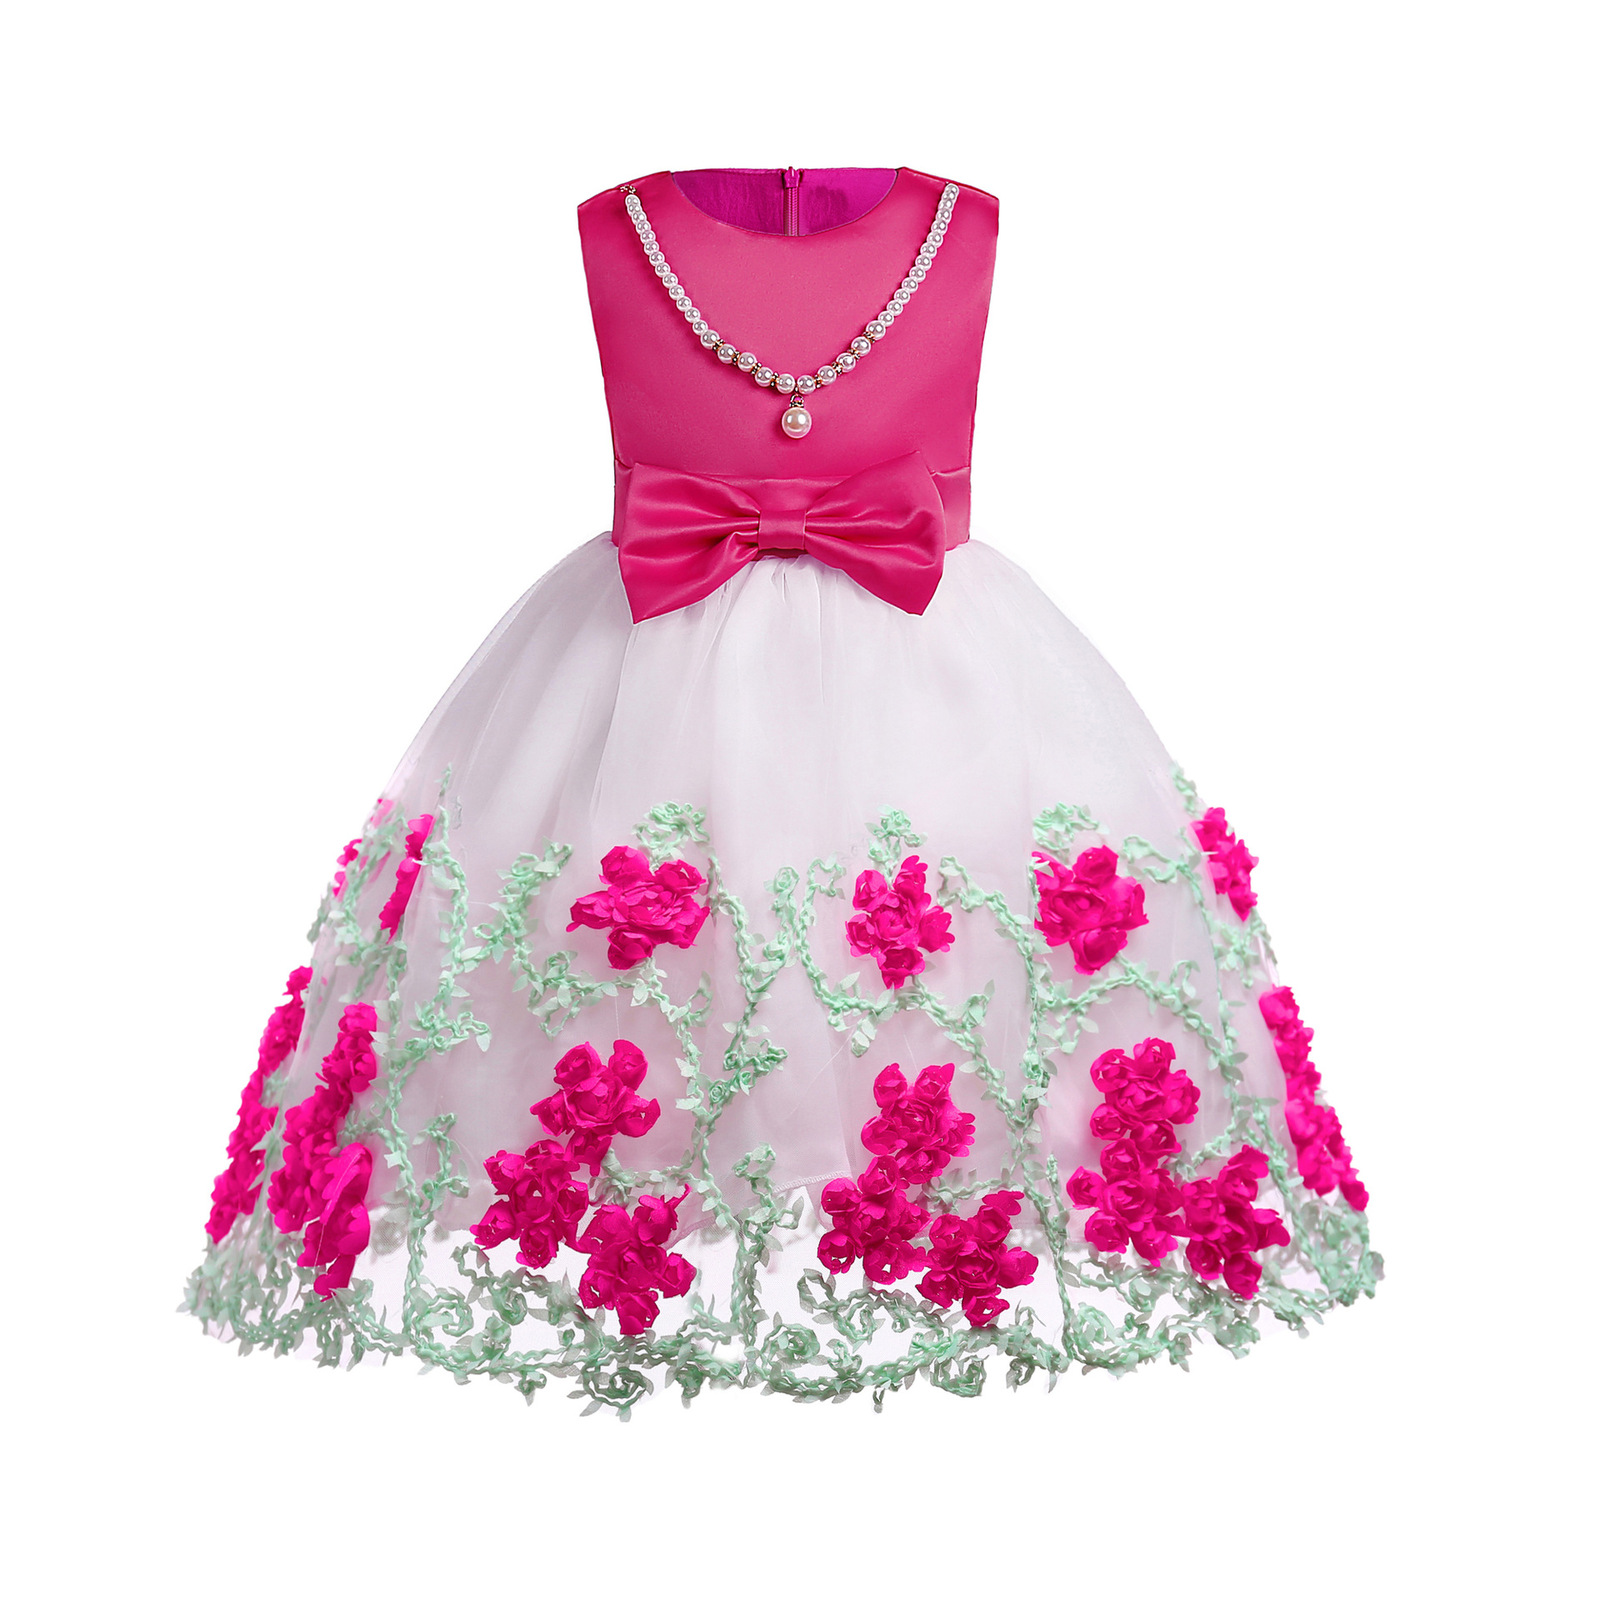 Primary image for Flower Girl Dresses Bow Floral Pearl Pageant Dress For Girls Evening Ball Gown